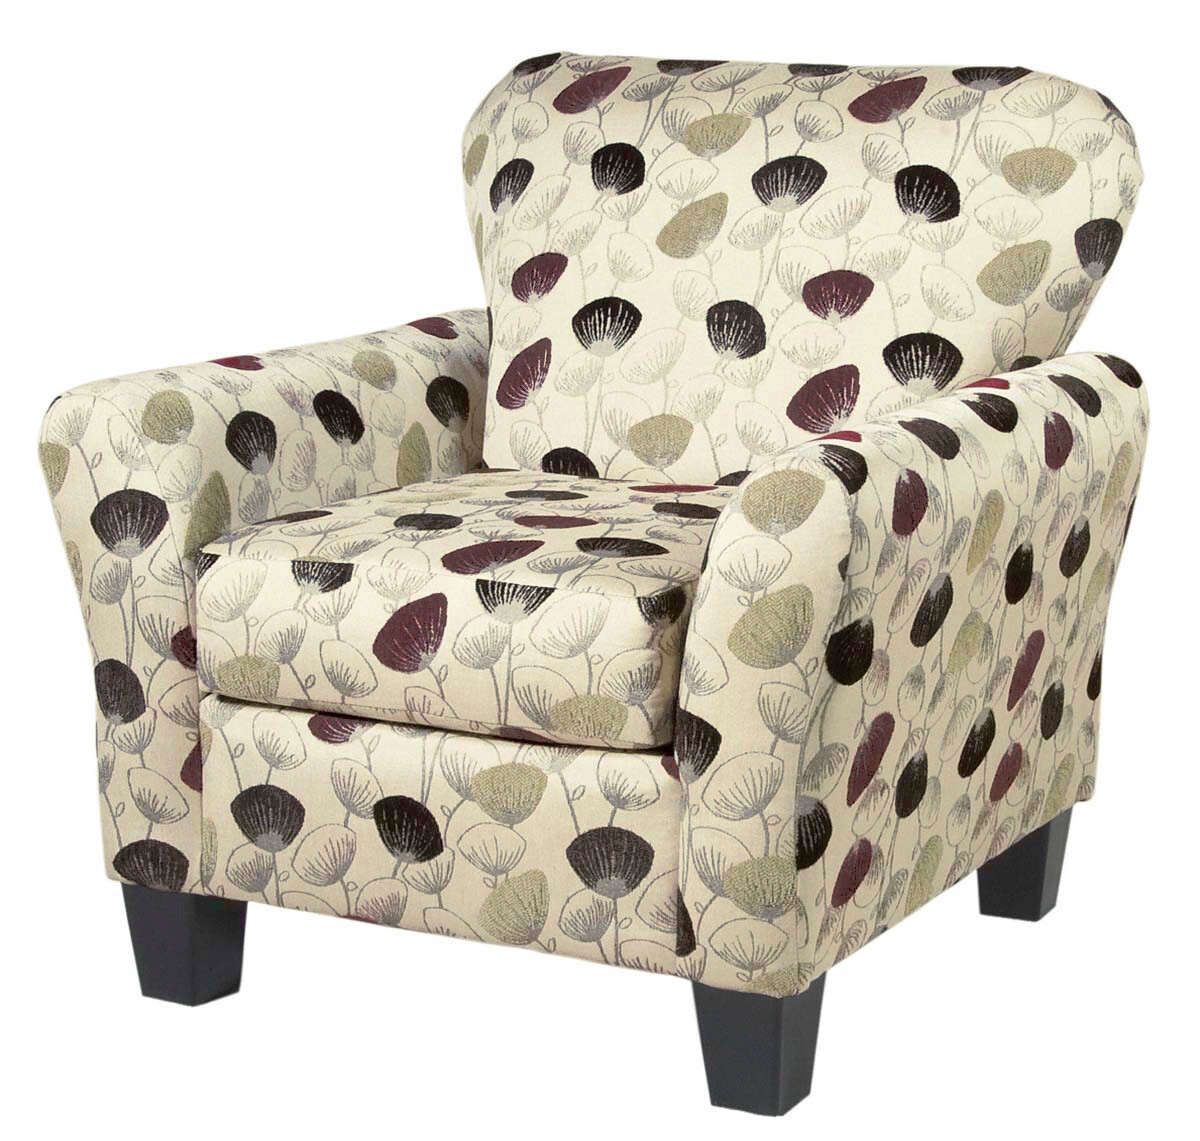 3010 Roxanne Rio Accent Chair $399